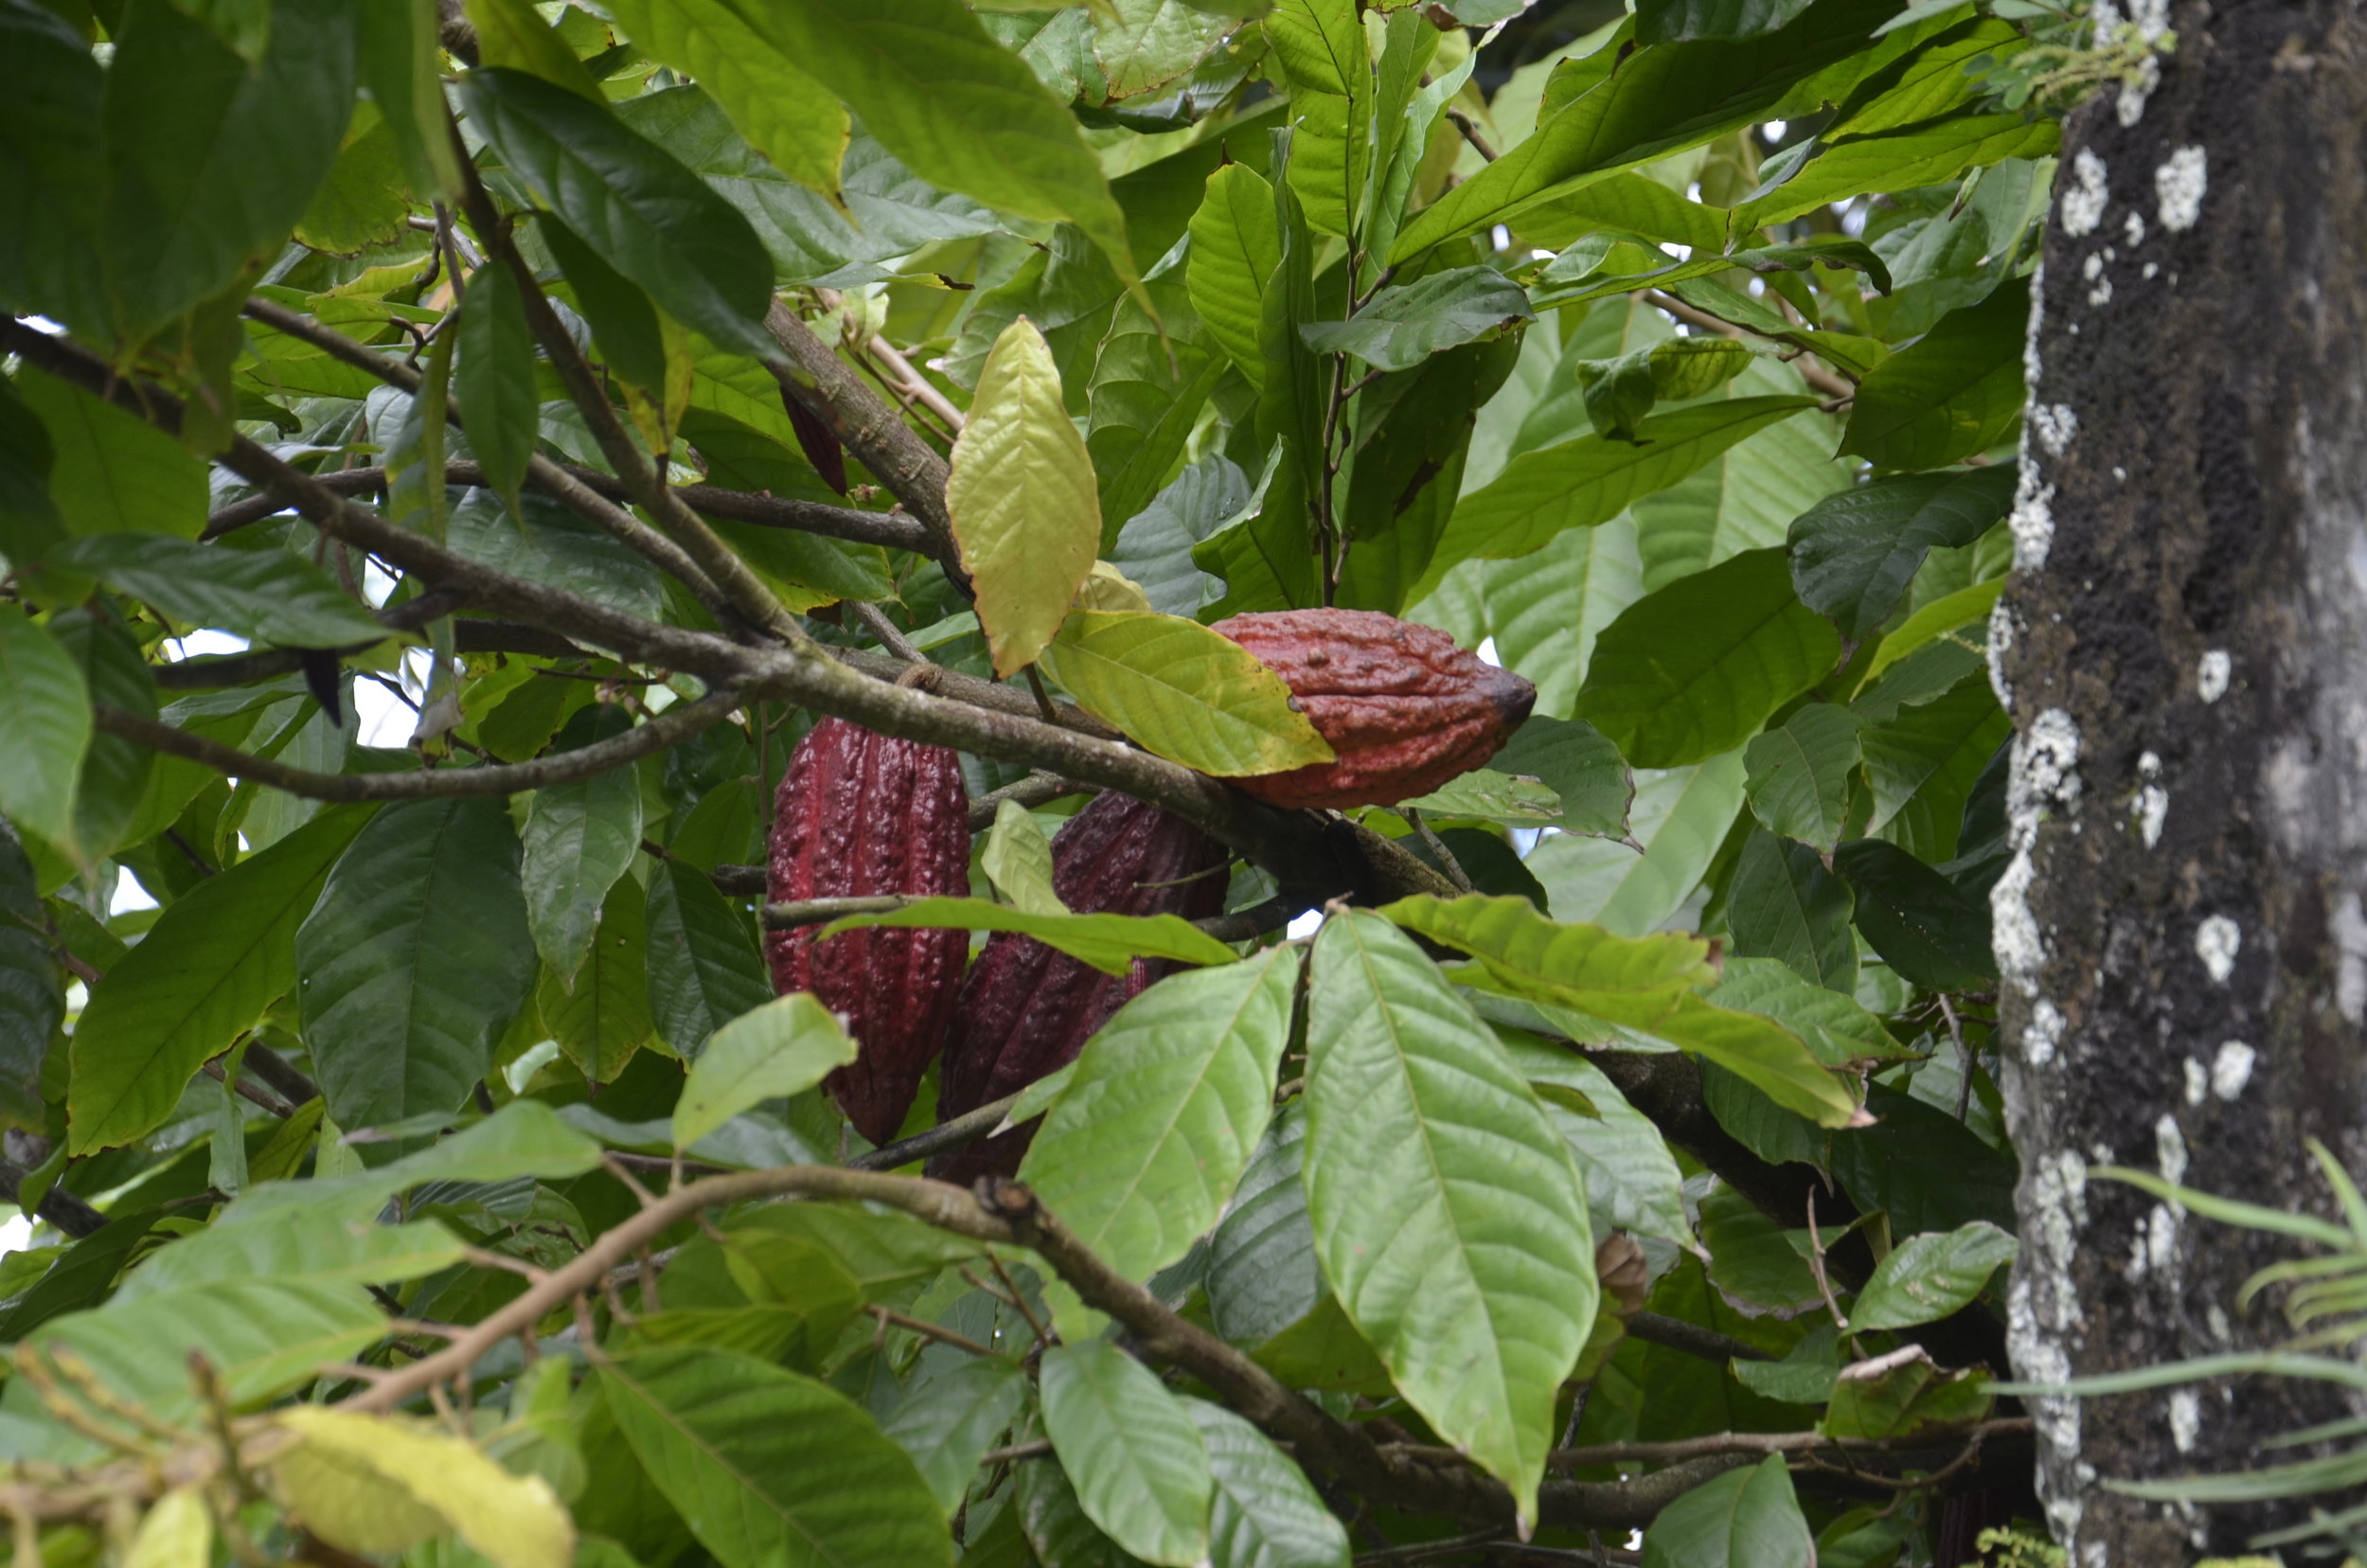 Cocoa pods hold the beans inside.